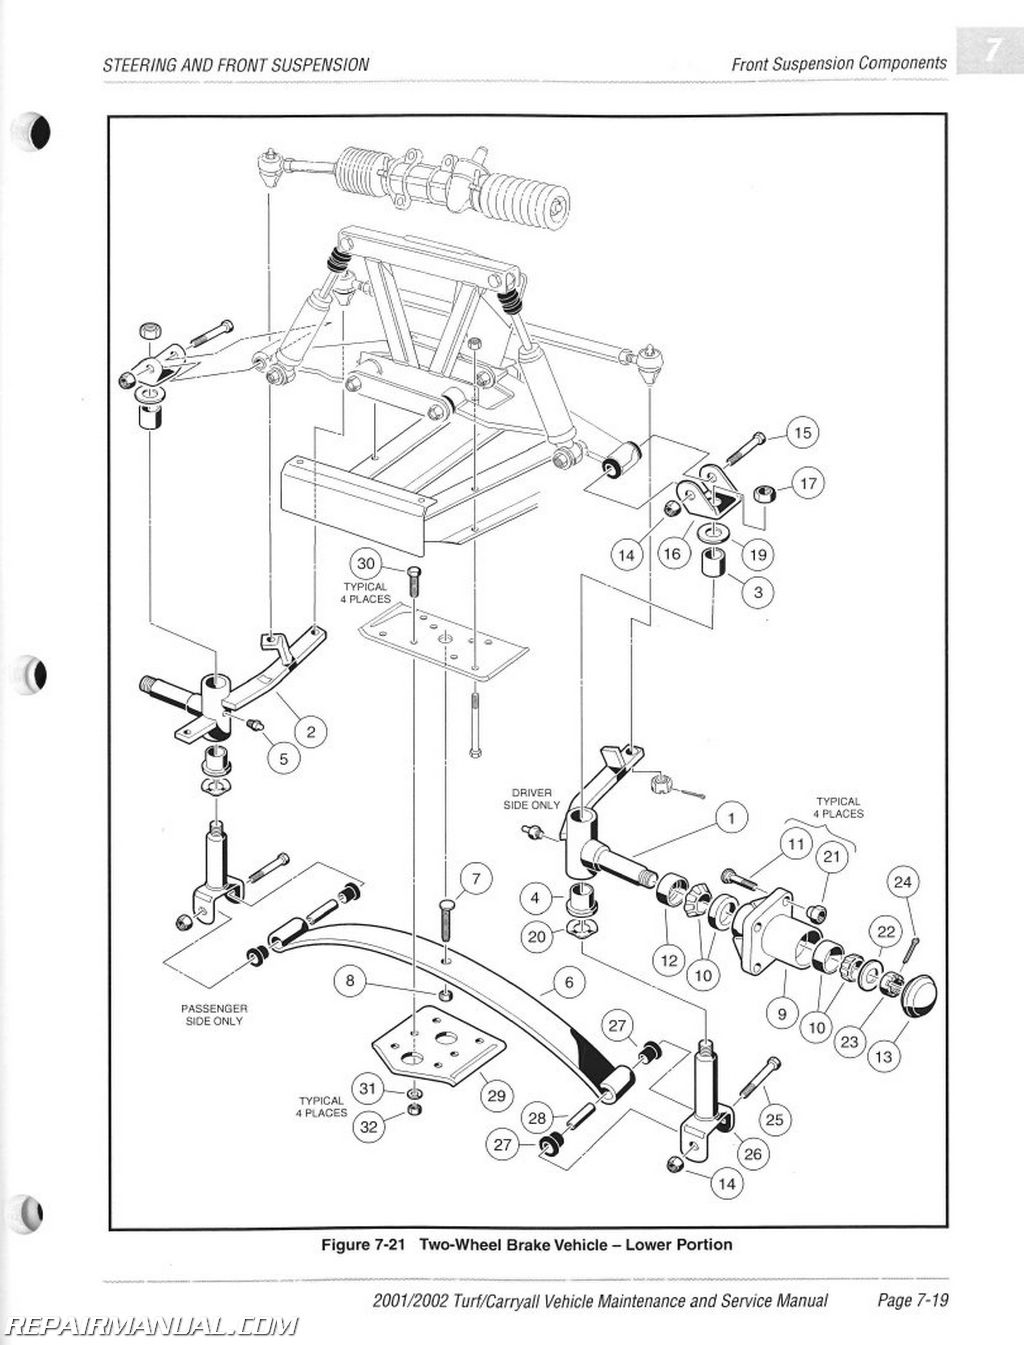 2007 Club Car Xrt 1550 Parts Manual Turf 2 Wiring Diagram Carryall For Light Switch U2022 97